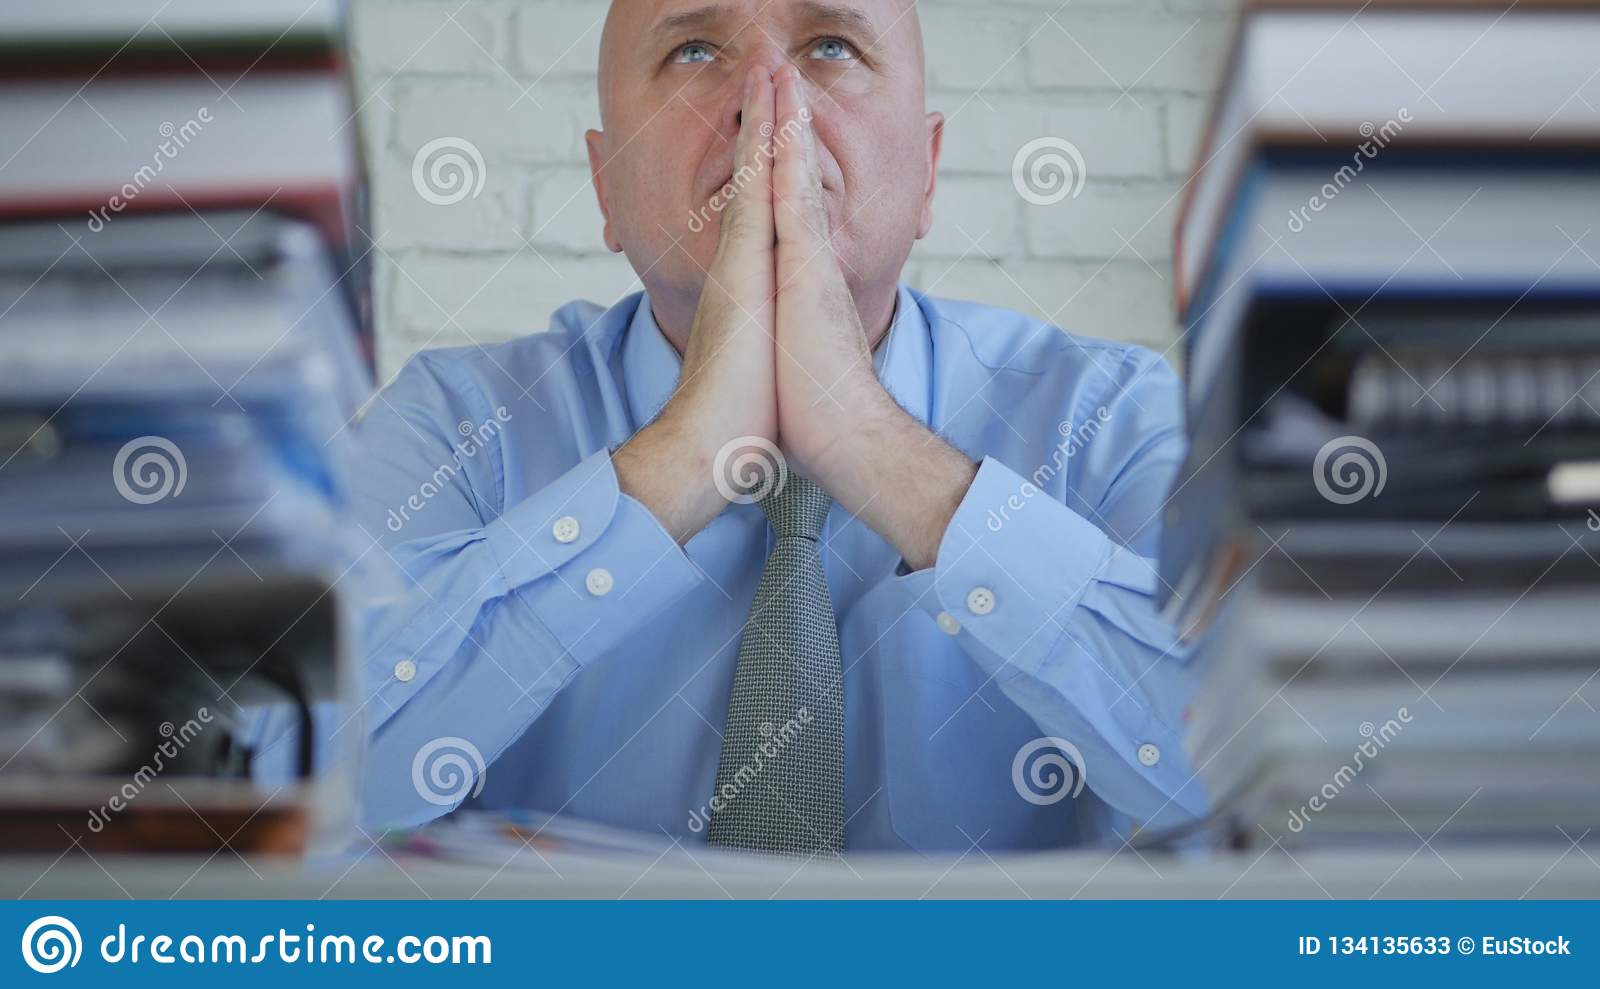 Tired Businessman Worried And Troubled Make a Pray Hand Gesture